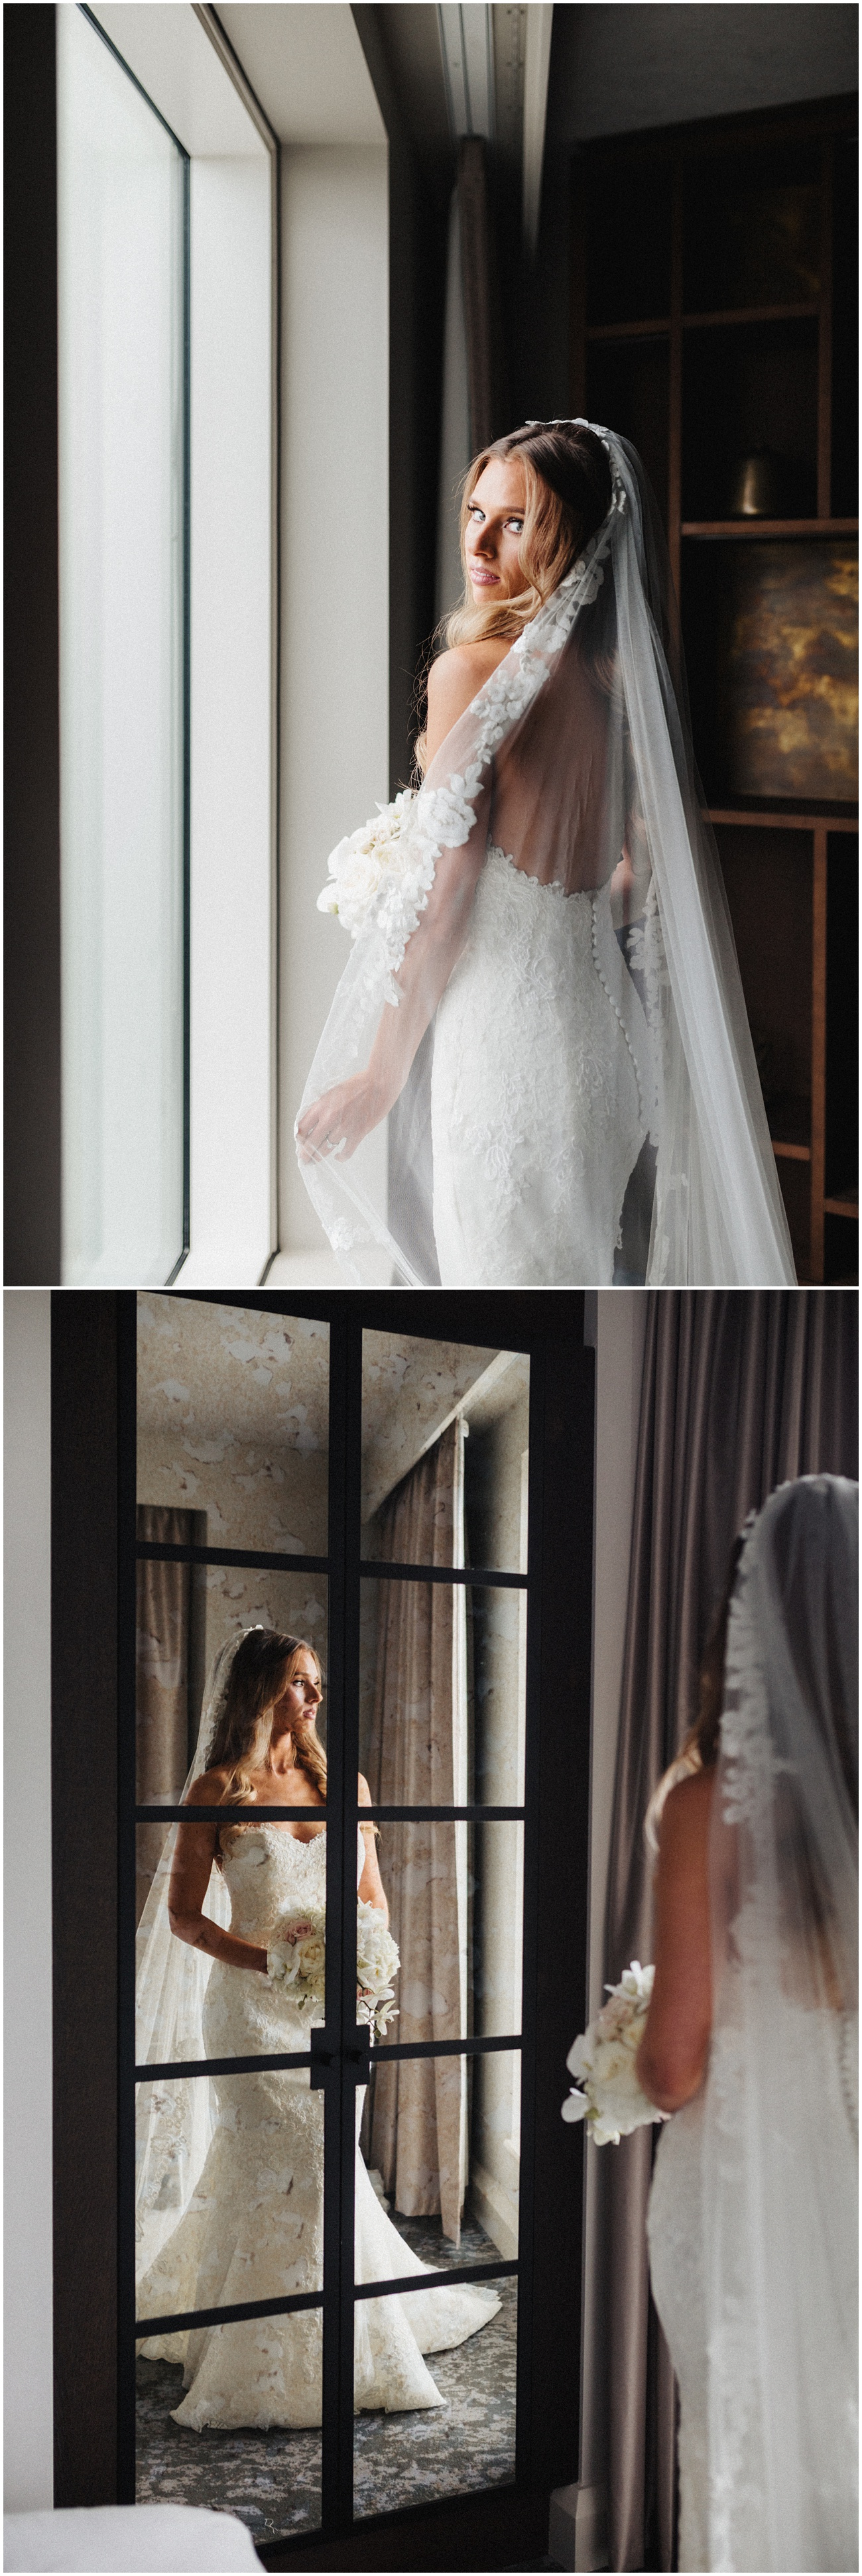 Portraits of the bride standing by the window holding her flowers